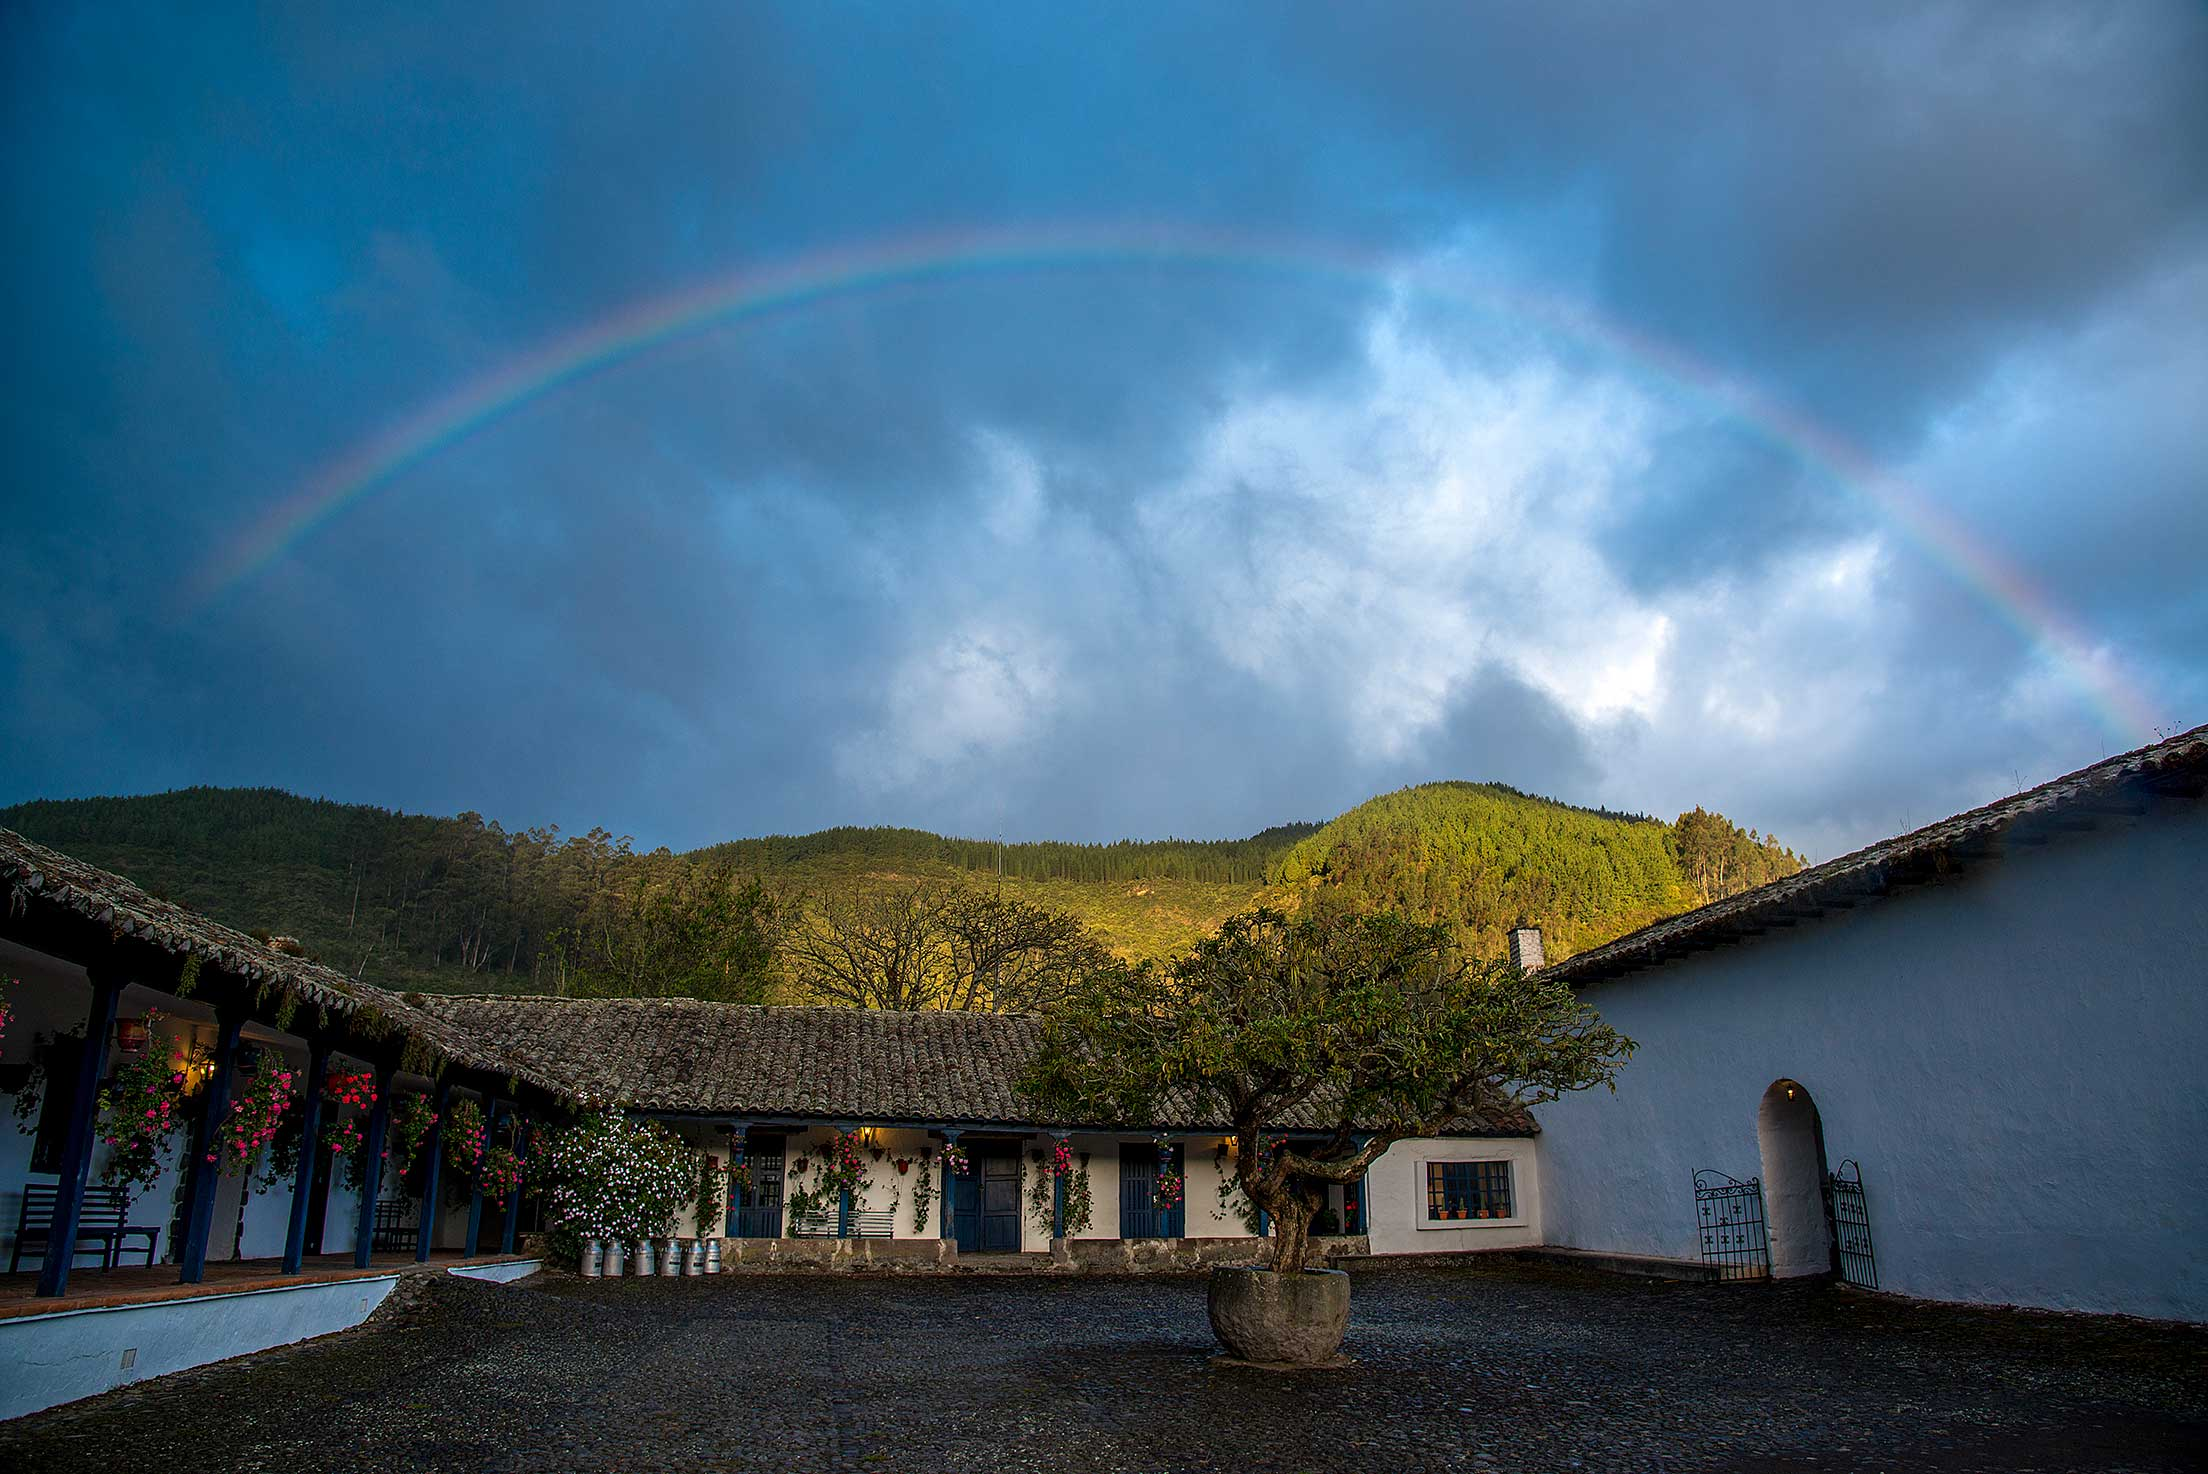 Hacienda Zuleta in the Andean Highlands